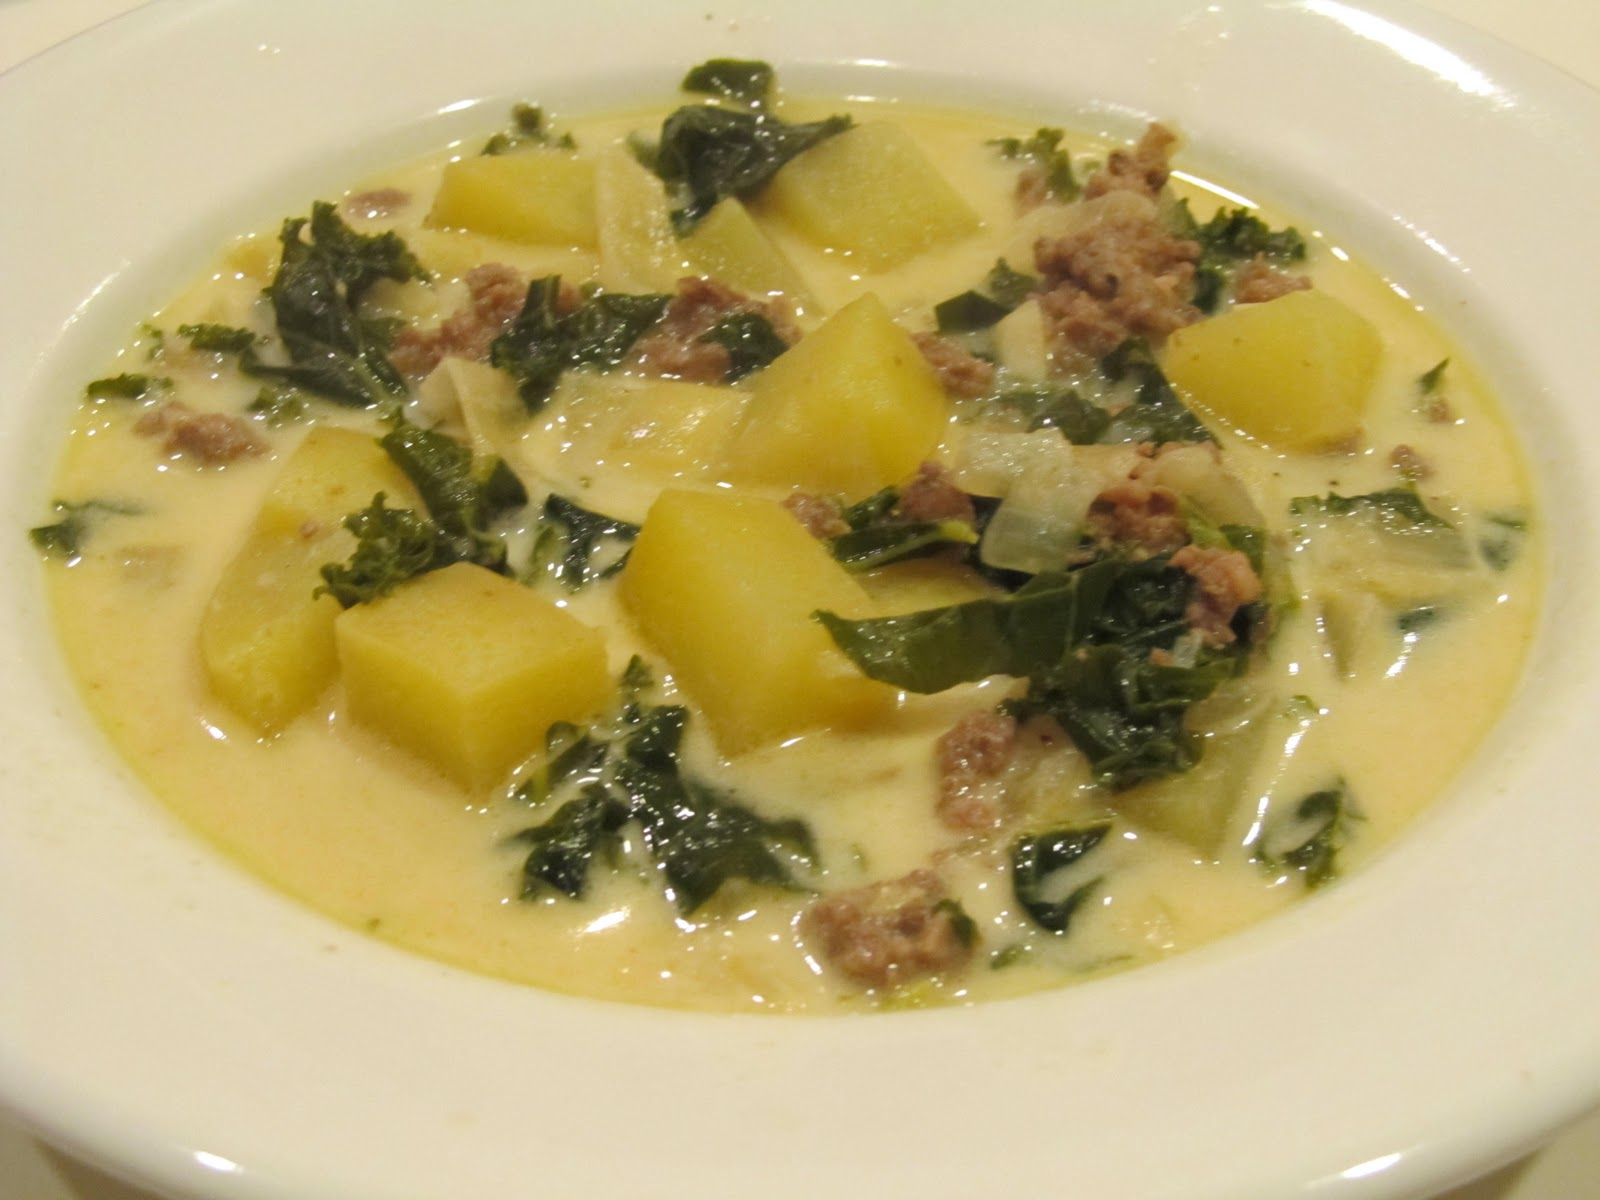 Kim's Cooking and Gardening: Tuscan Kale Potato Soup